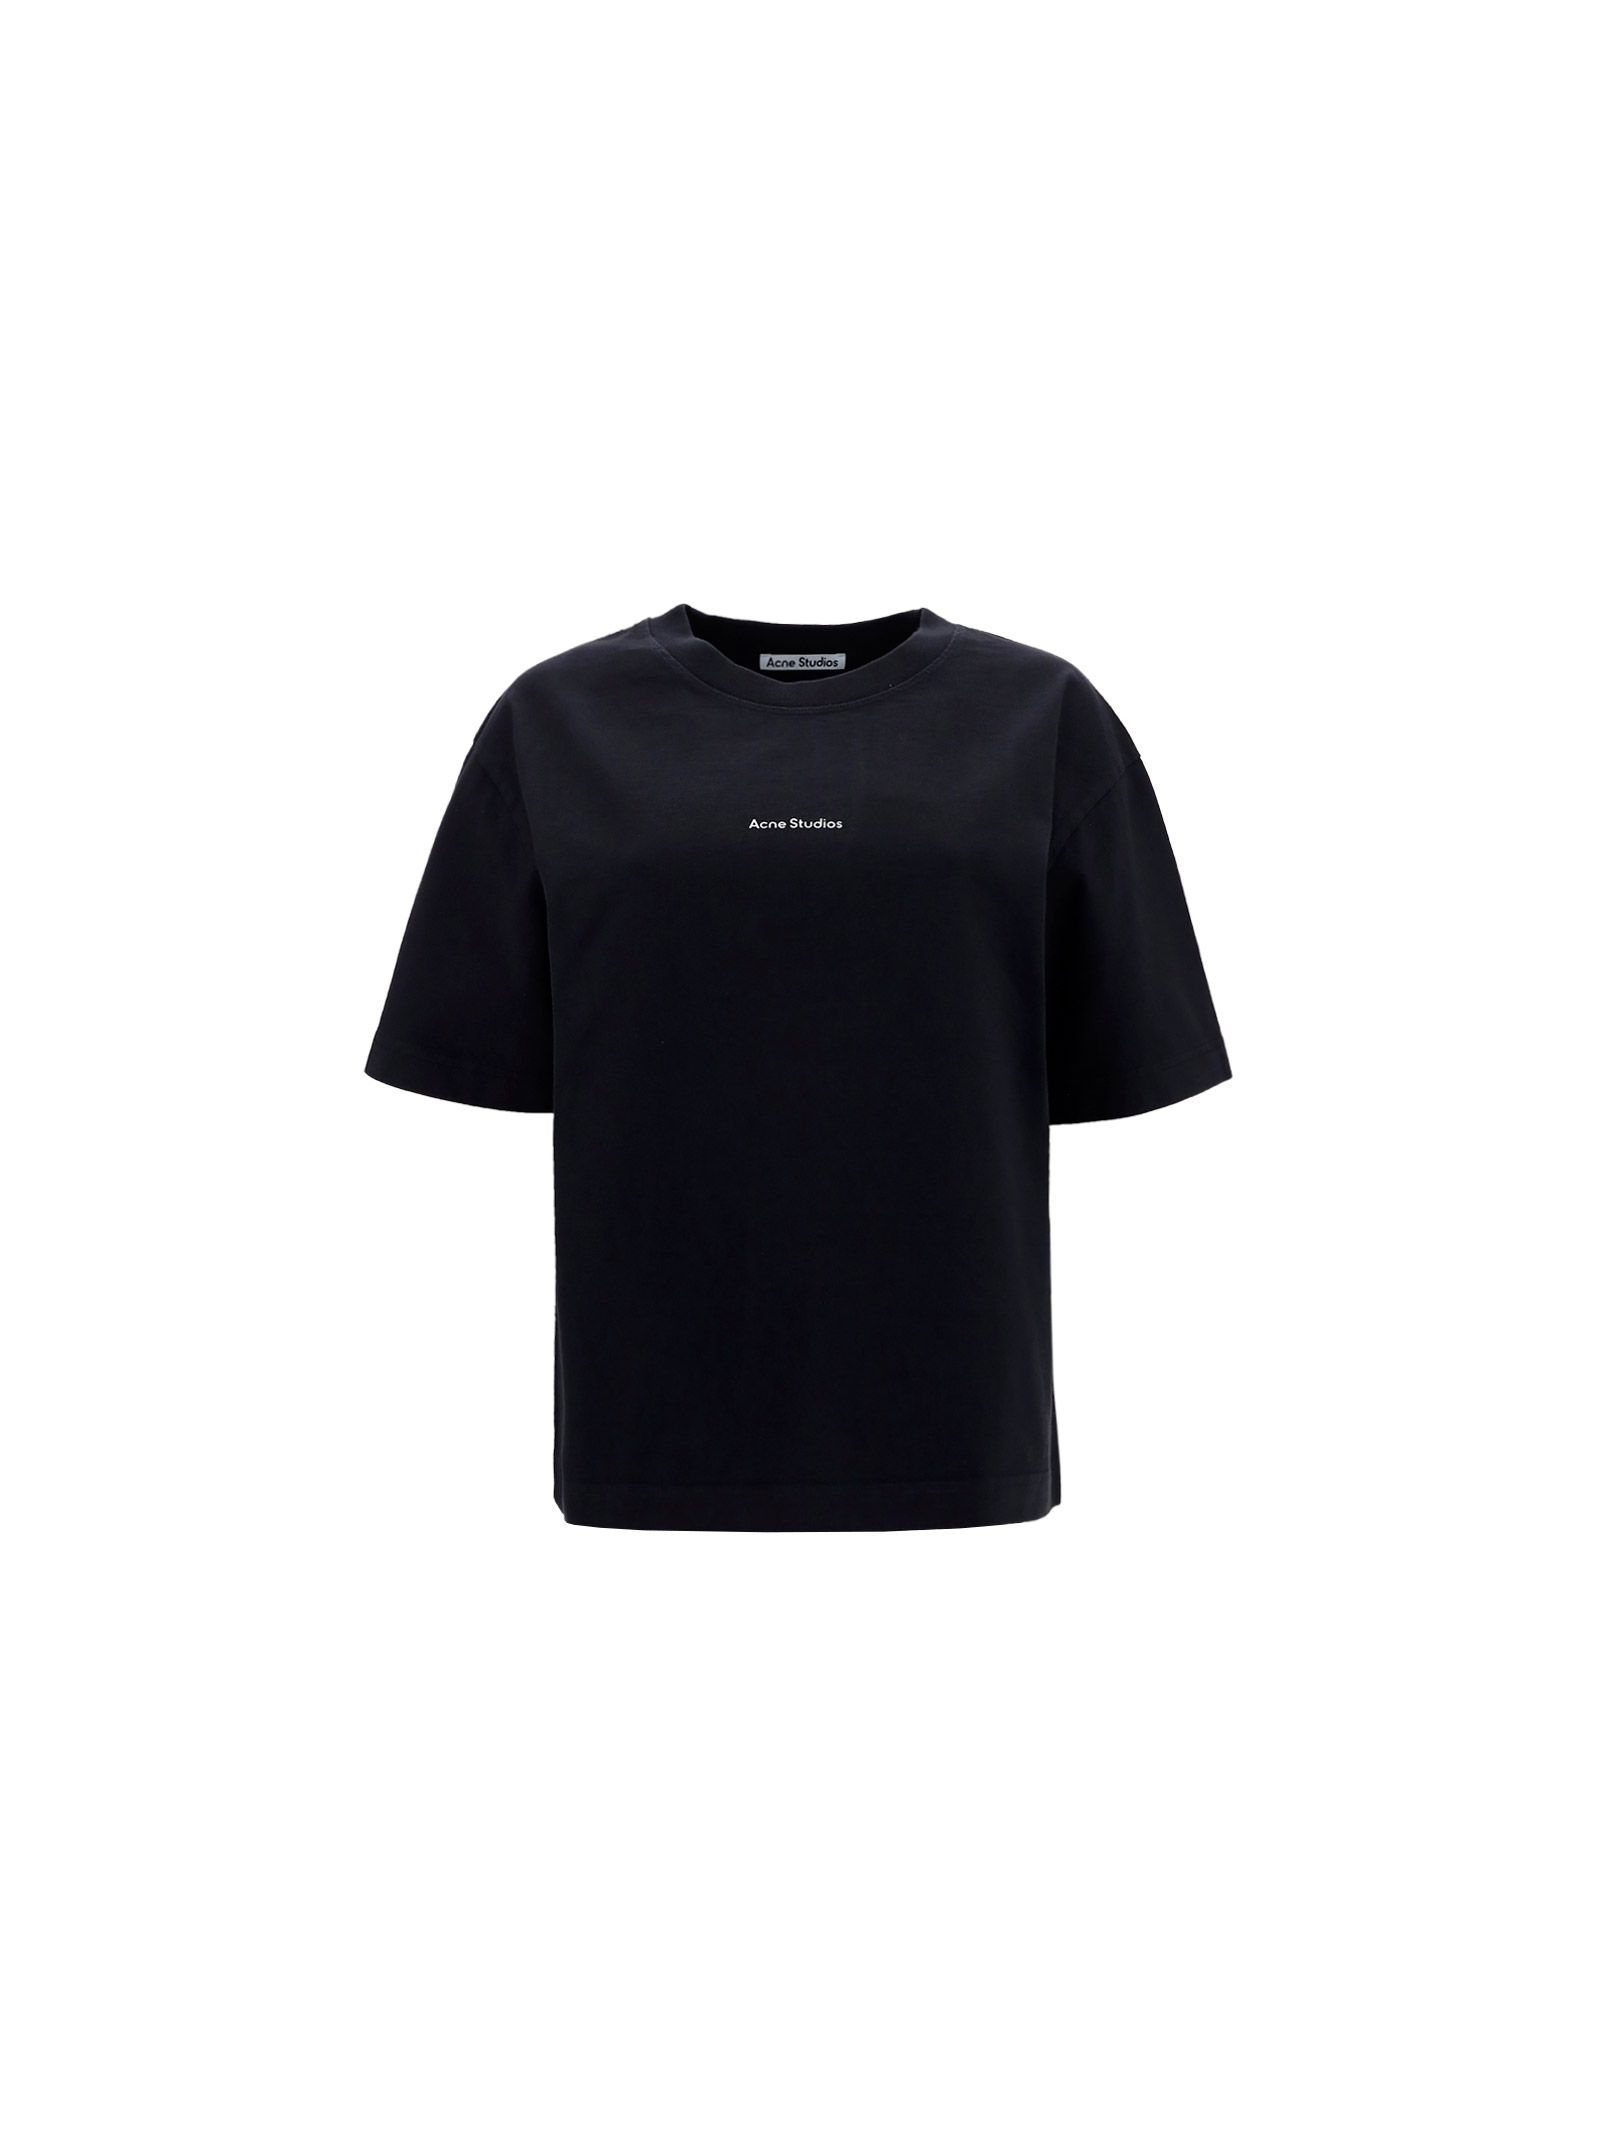 Acne Studios ACNE STUDIOS WOMEN'S BLACK OTHER MATERIALS T-SHIRT